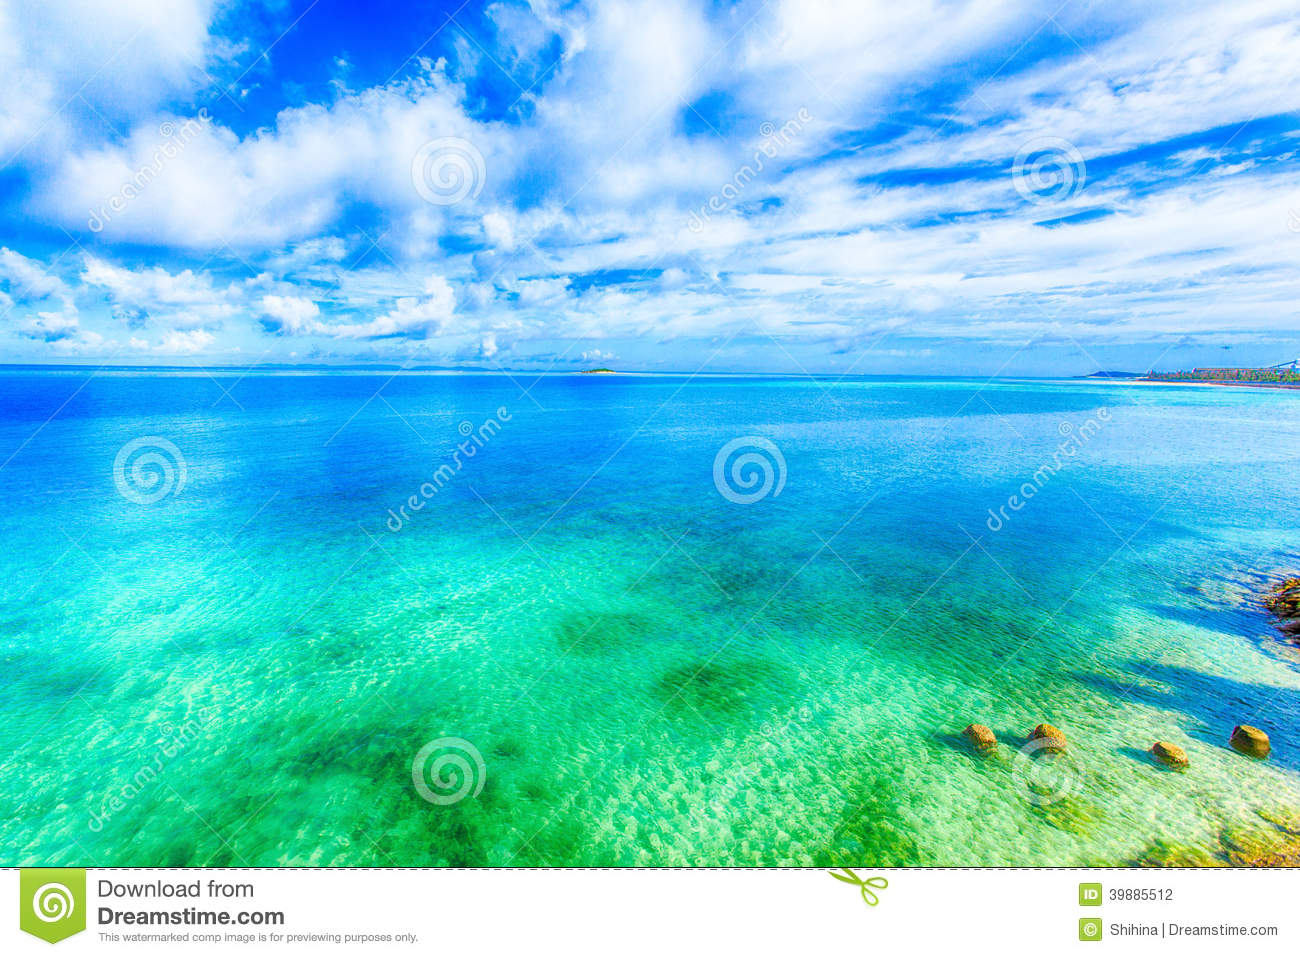 Download Beautiful Scenery Of Shining Blue Sky And Ocean In Okinawa Stock Photo